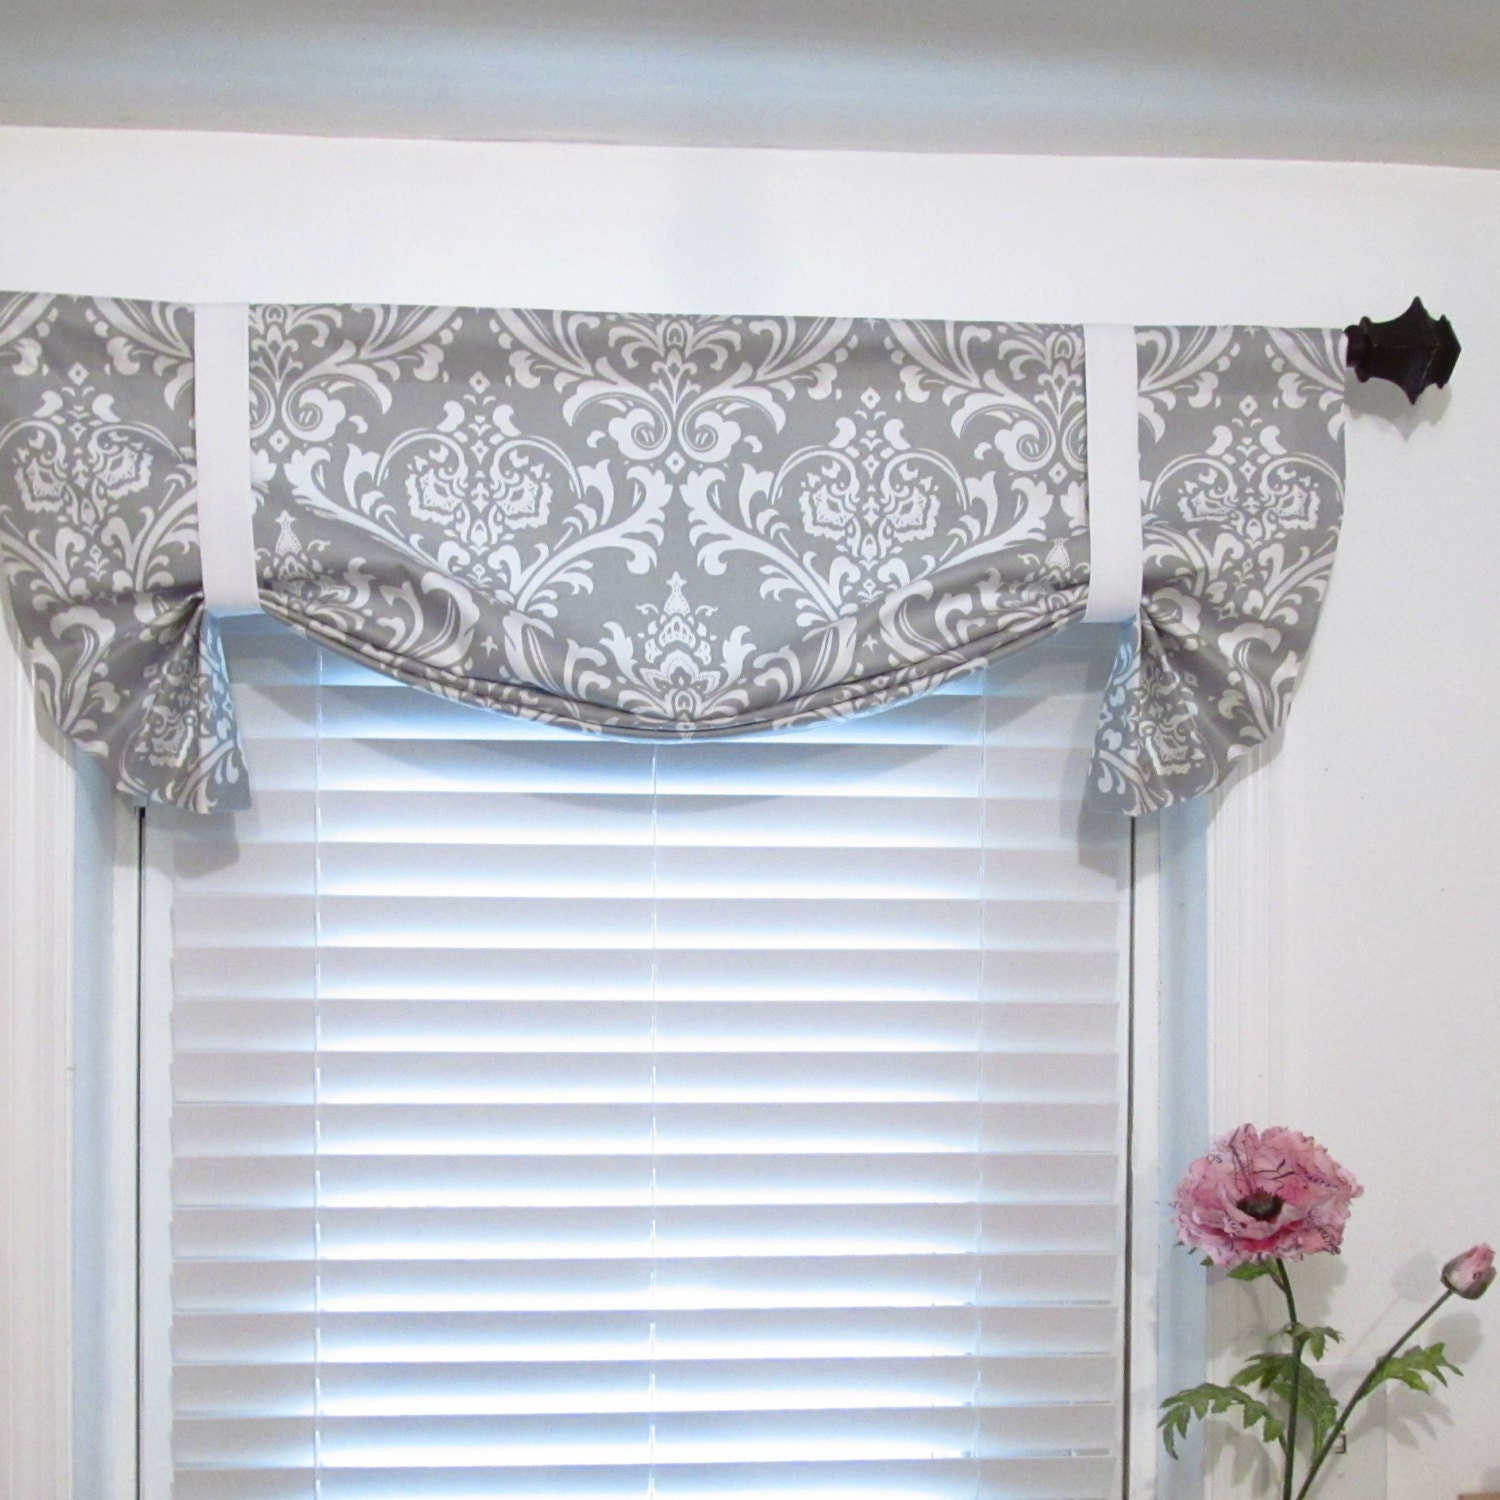 tie up curtain valance gray white damask by supplierofdreams. Black Bedroom Furniture Sets. Home Design Ideas